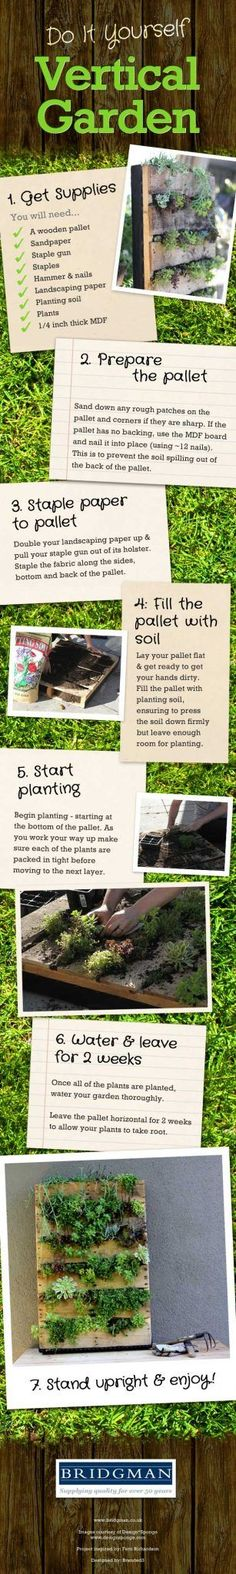 Thinking of doing a Pallet Garden this year. A Vertical Pallet Garden is easy to prepare and can bring some nice character to your patio or outdoor space. Source: Bridgman Vertical Pallet Garden reposted with permission. Related PostsEasy DIY Swing Set Canopy ReplacementHow to Create a Homework Station or Homeschool Area in Small SpacesHow to...  [read more]